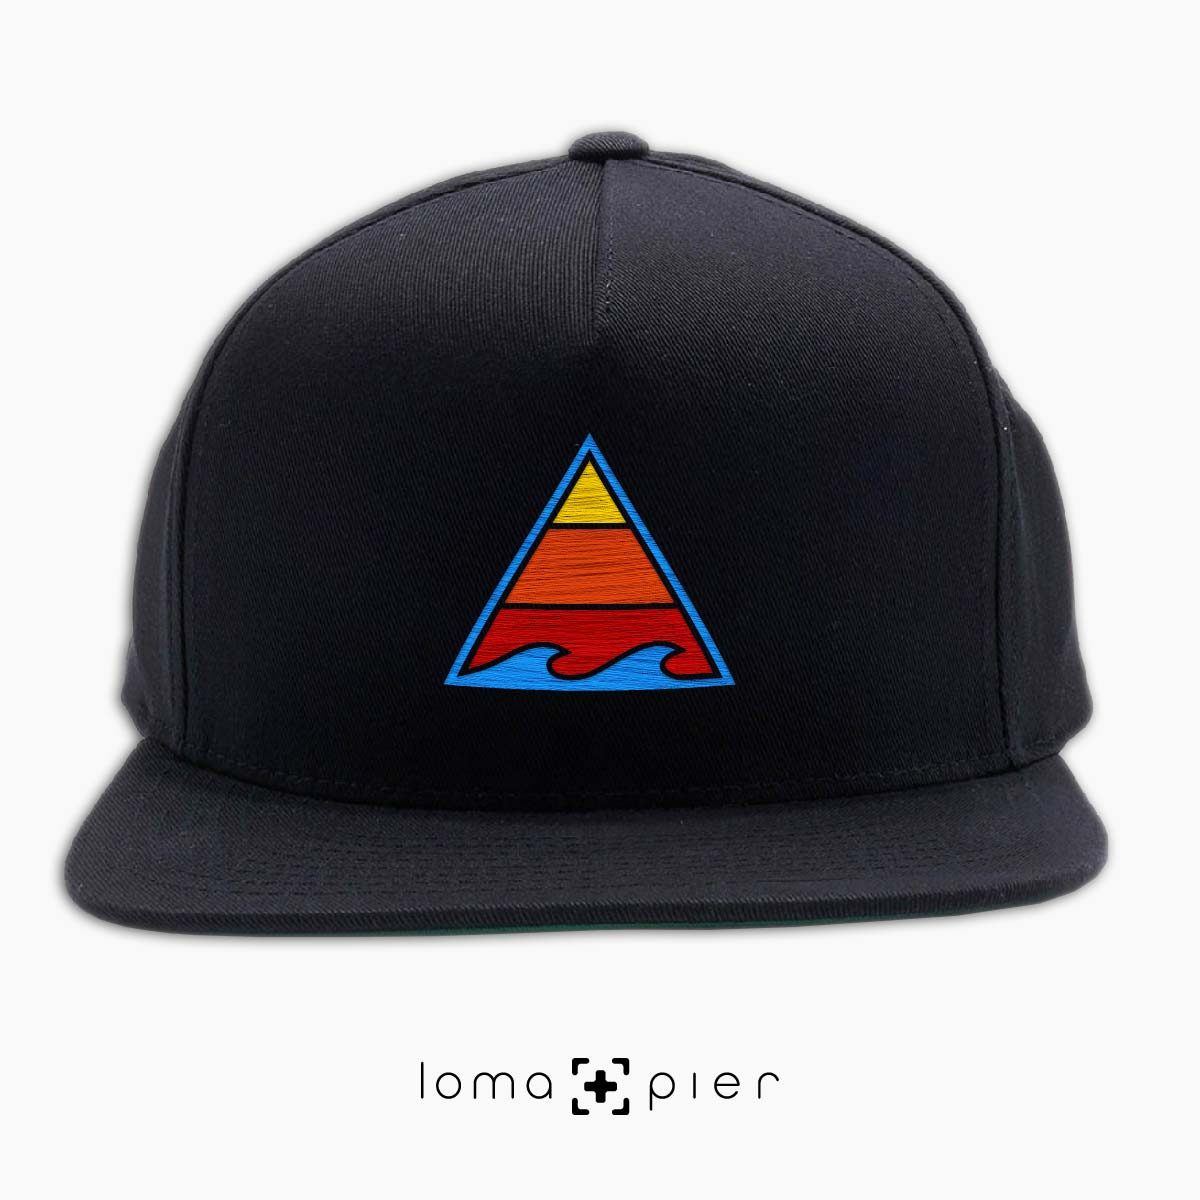 RIDE THAT WAVE hat in black by loma+pier hat store